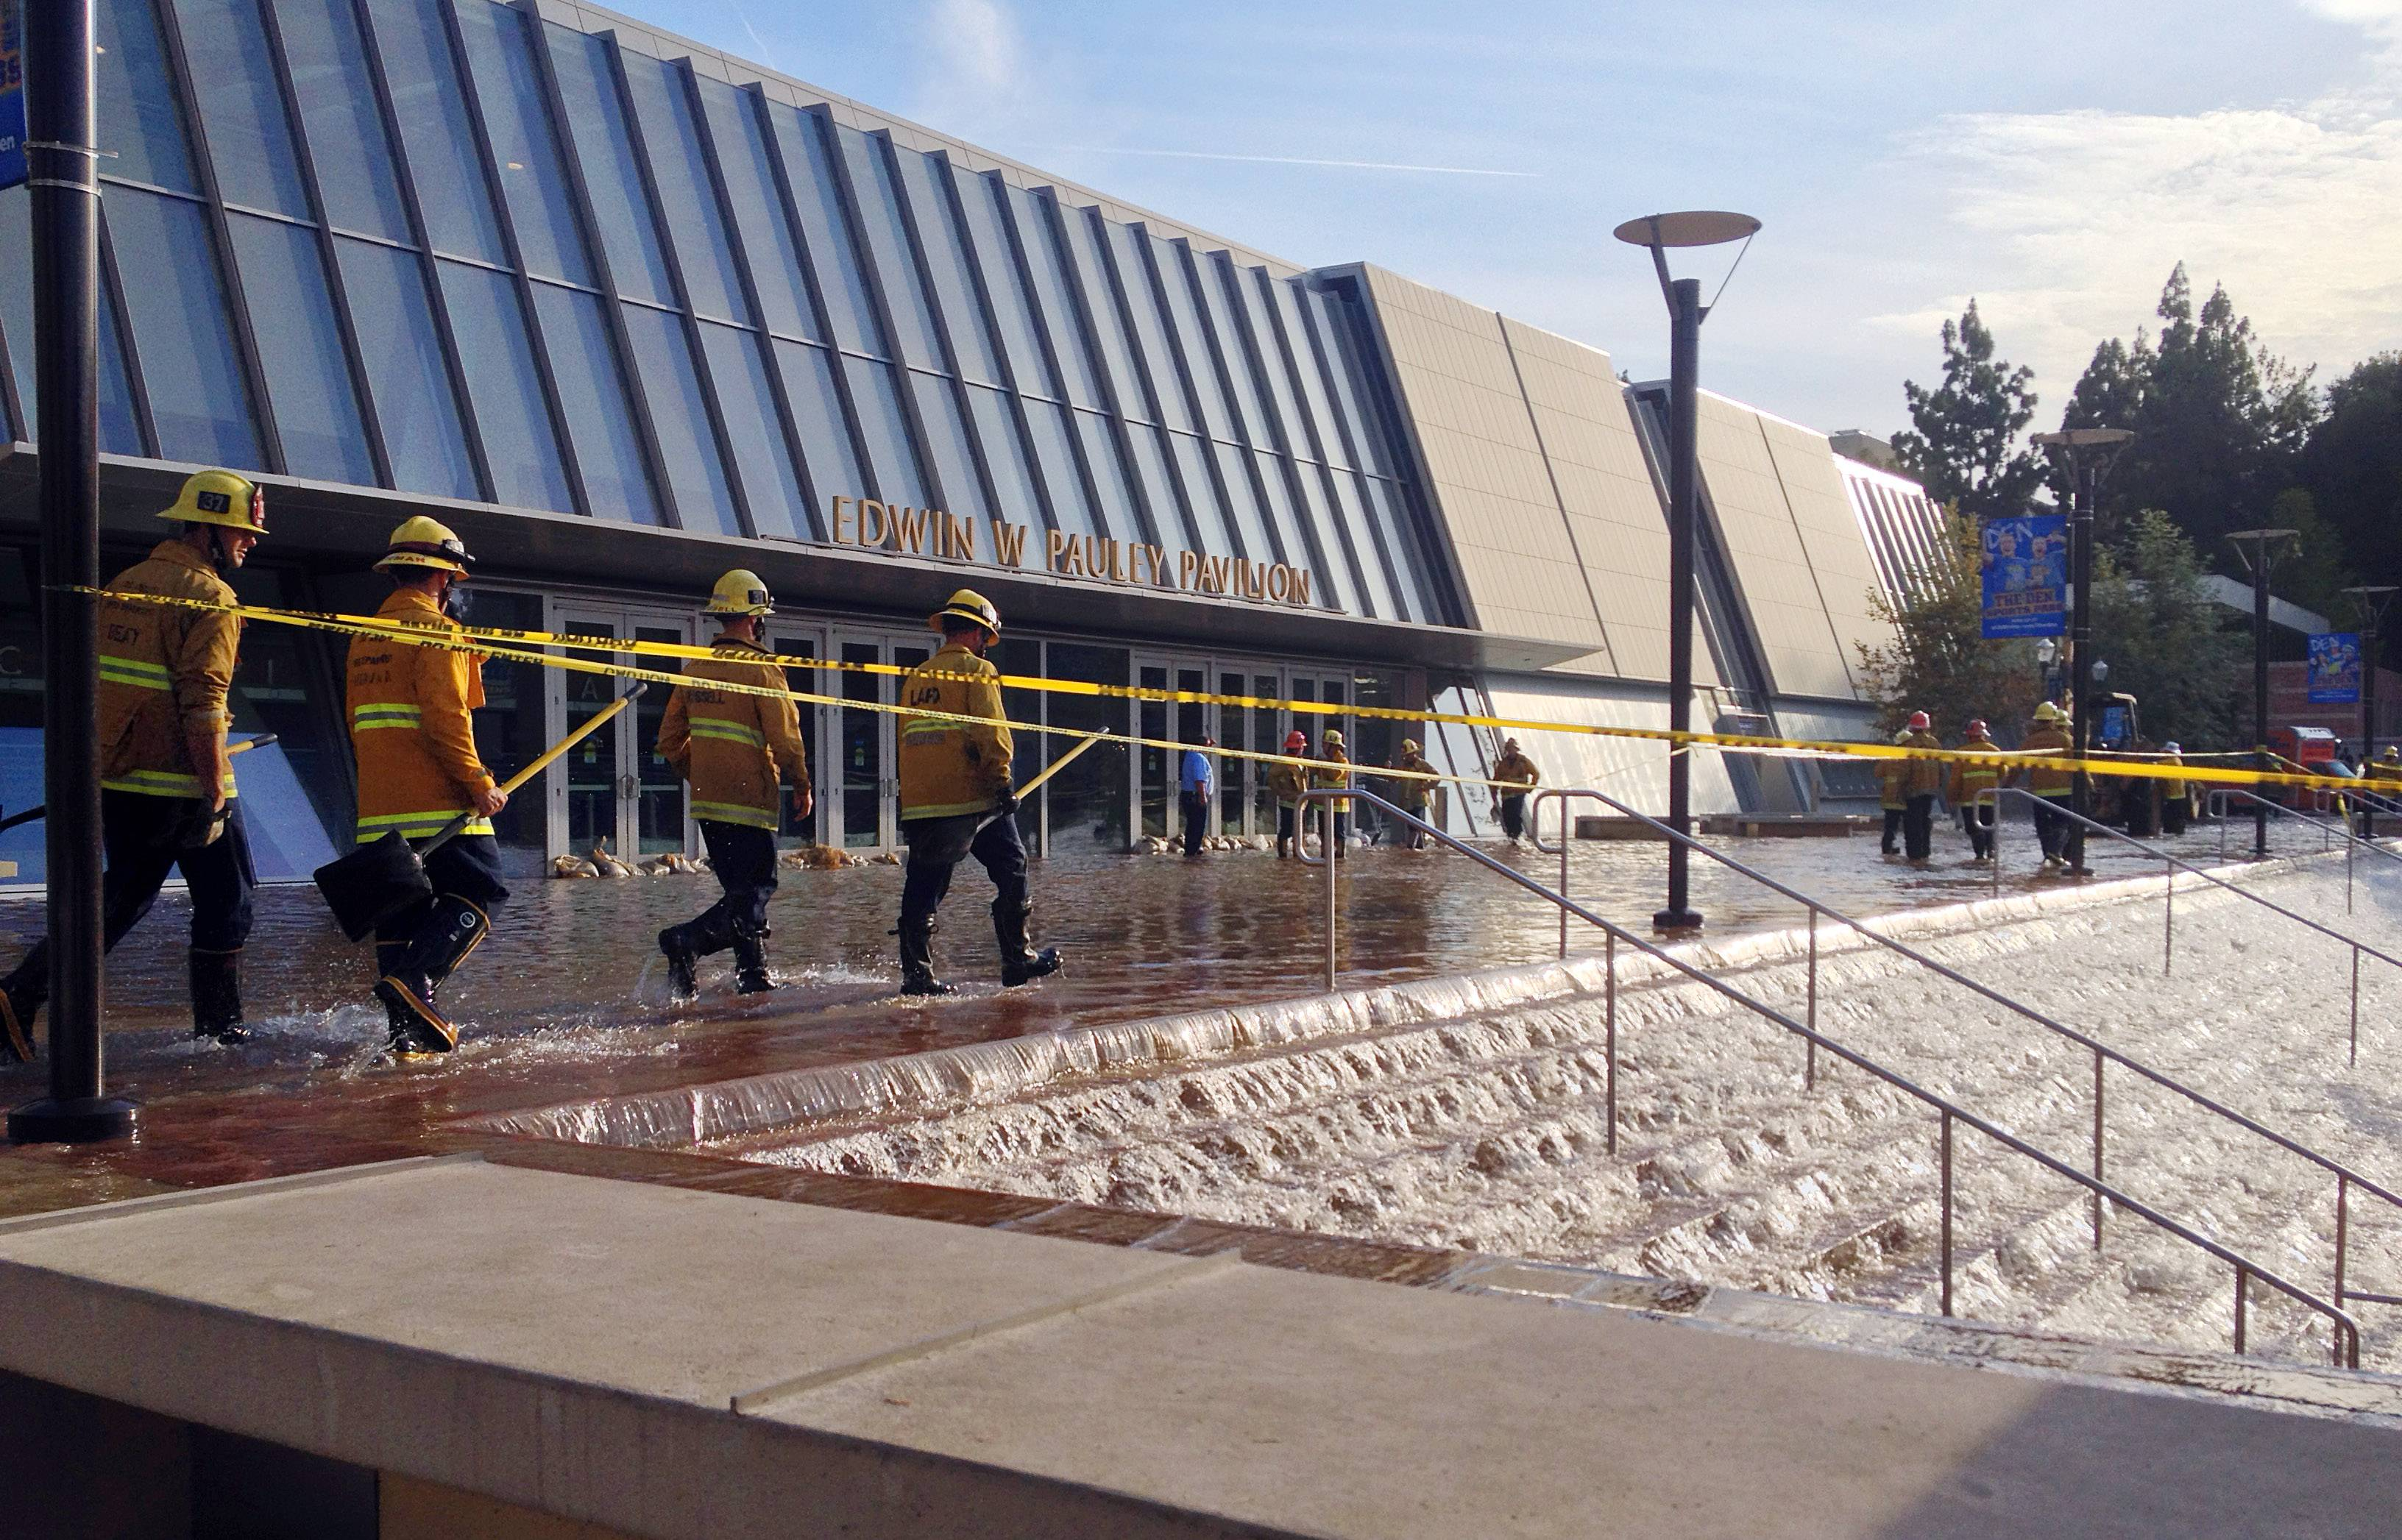 Water cascades down the stairs to a parking structure adjacent to the main entry doors of Pauley Pavilion, home of UCLA basketball, left, after a 30-inch water main burst on nearby Sunset Boulevard Tuesday, July 29, 2014, in Los Angeles. Water also reached the playing floor of the basketball arena.